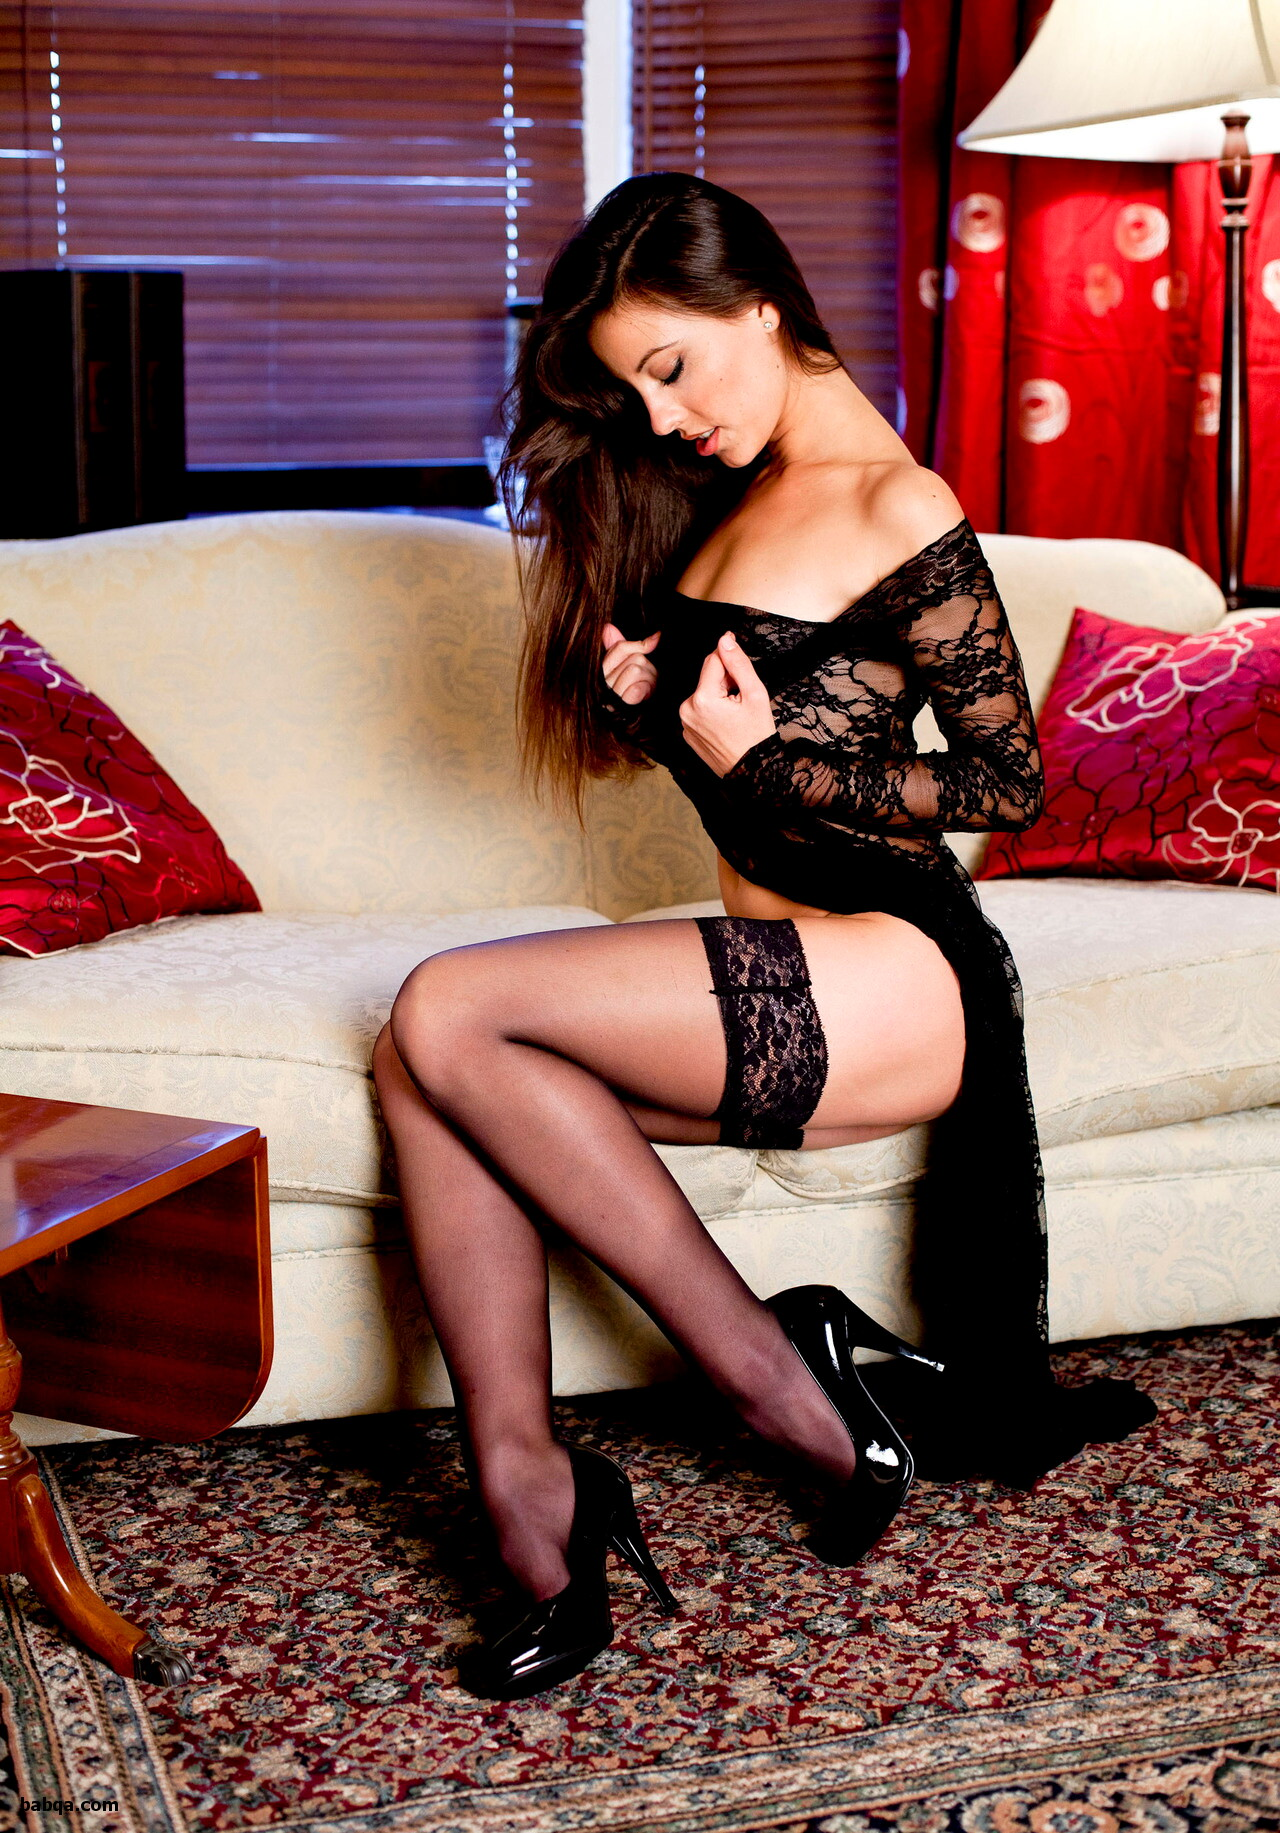 thigh high stockings sexy and lingerie sexy photo